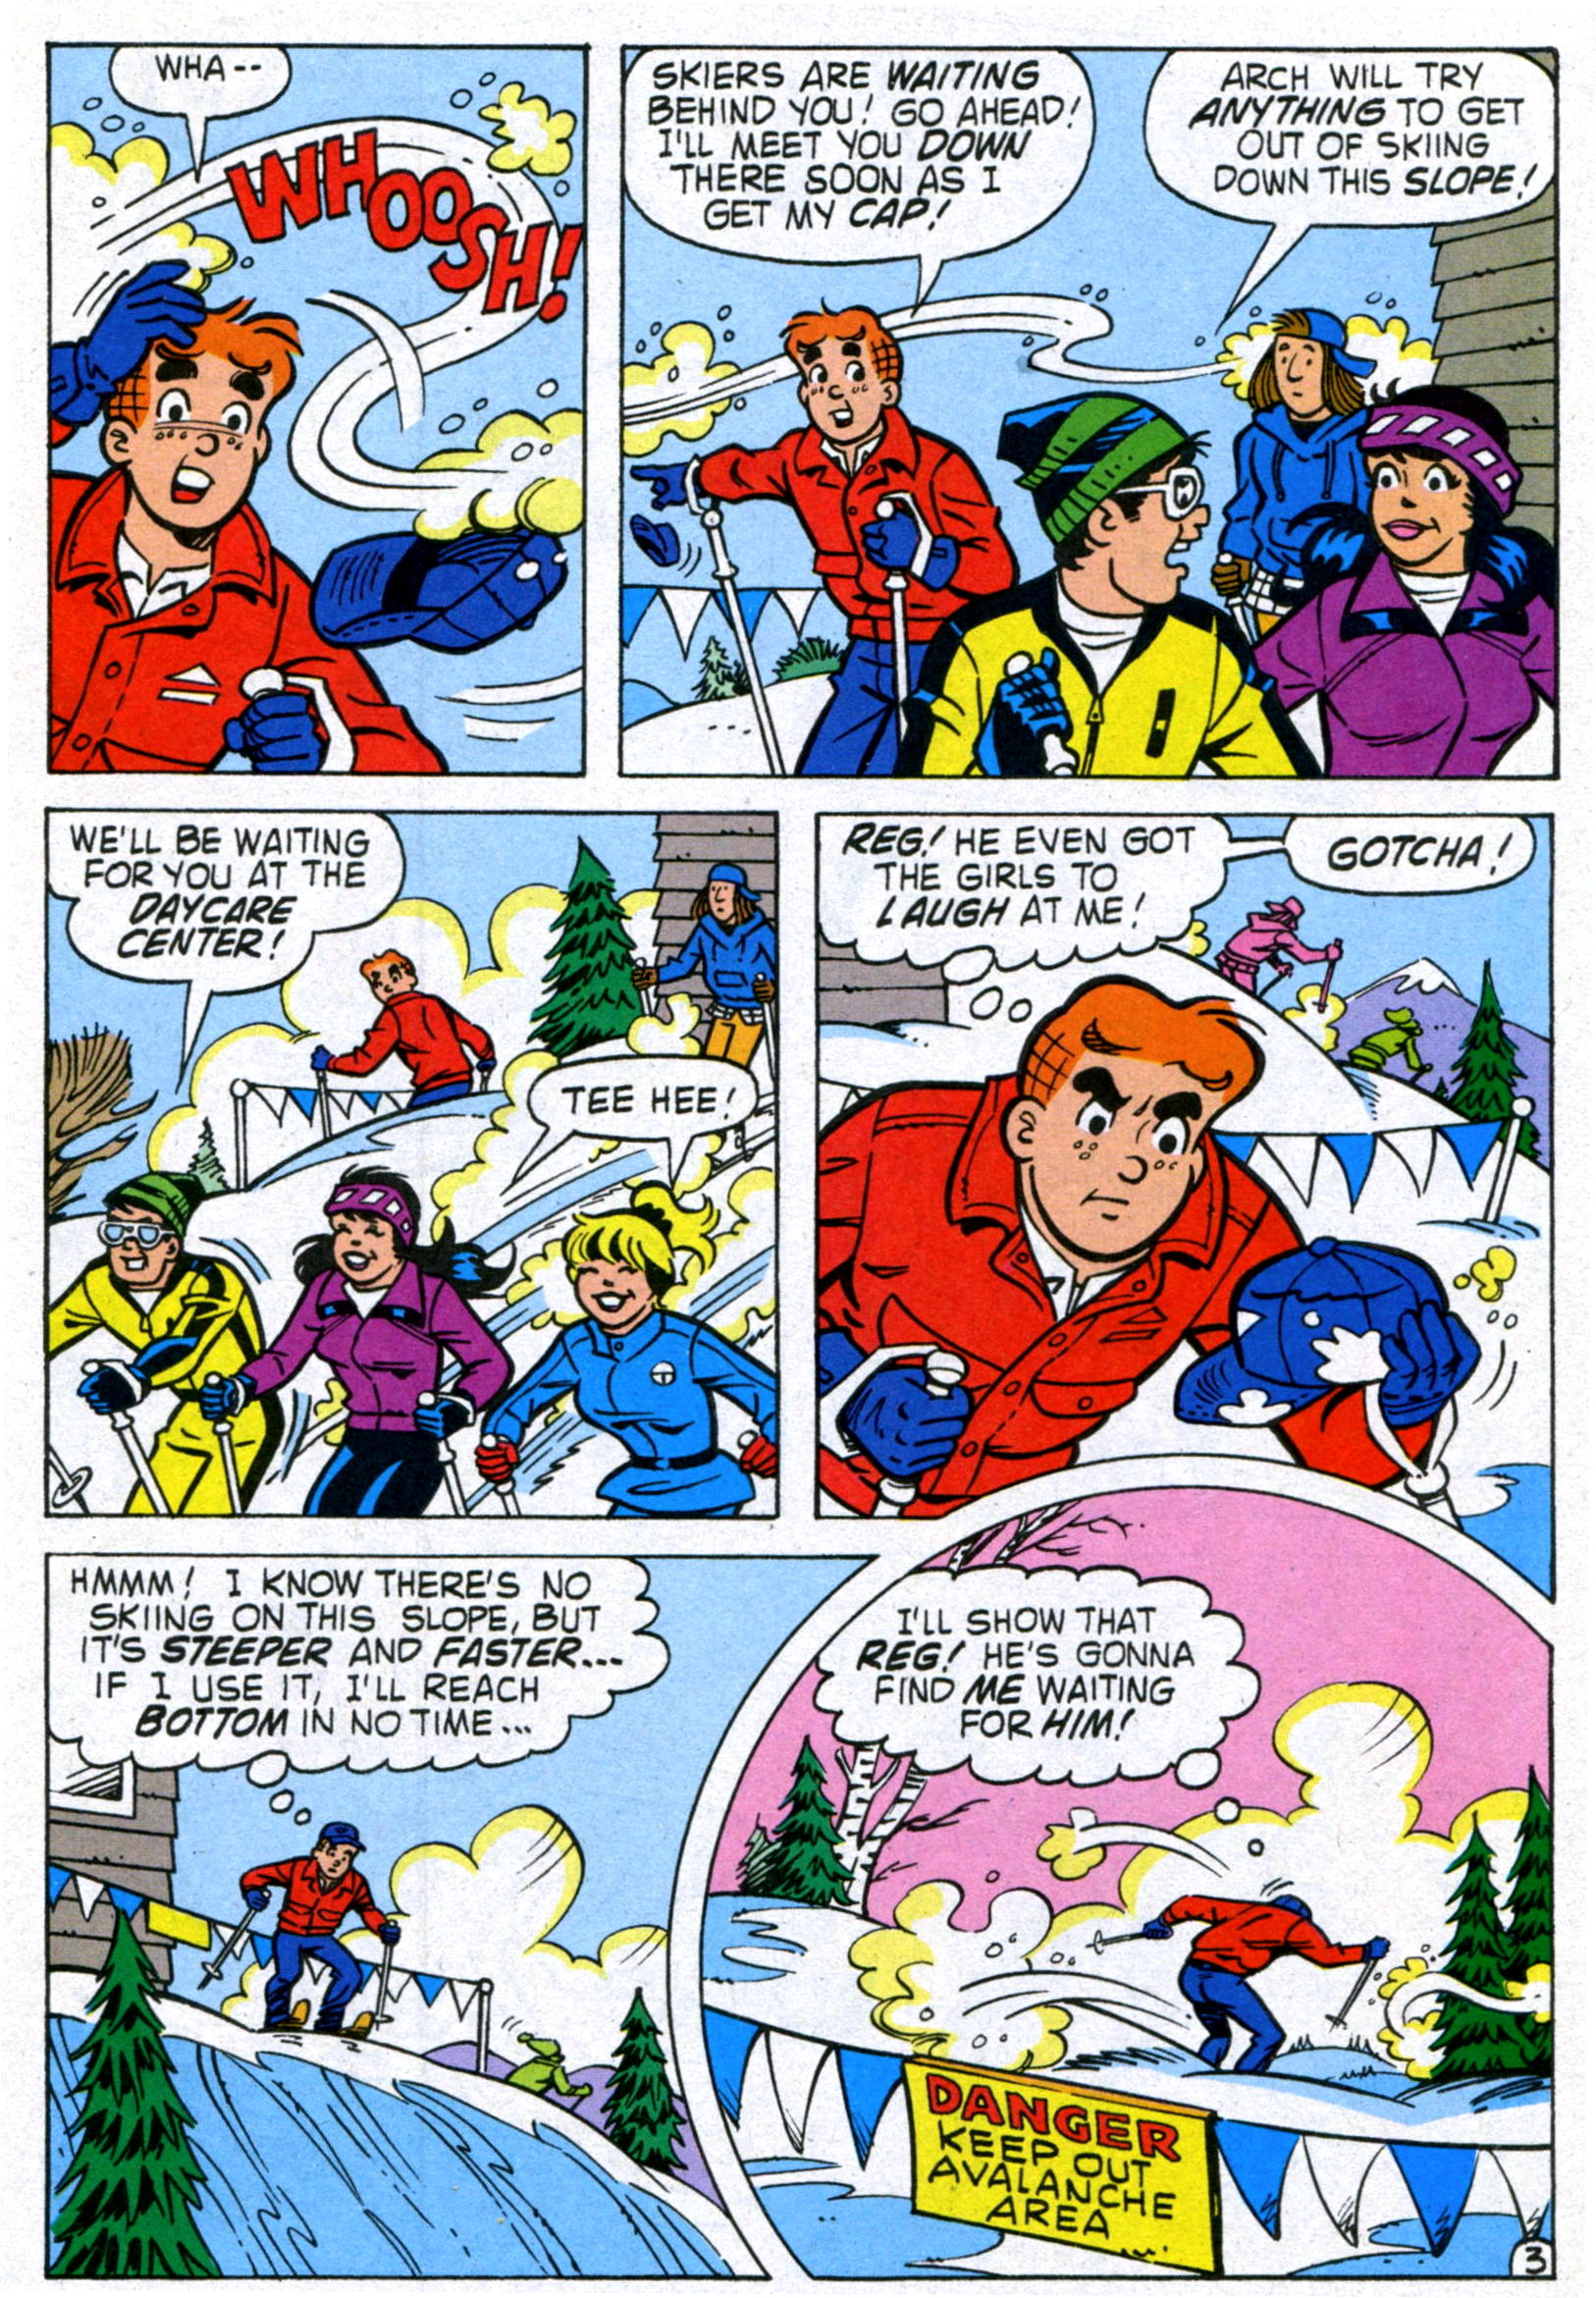 Read online World of Archie comic -  Issue #14 - 31